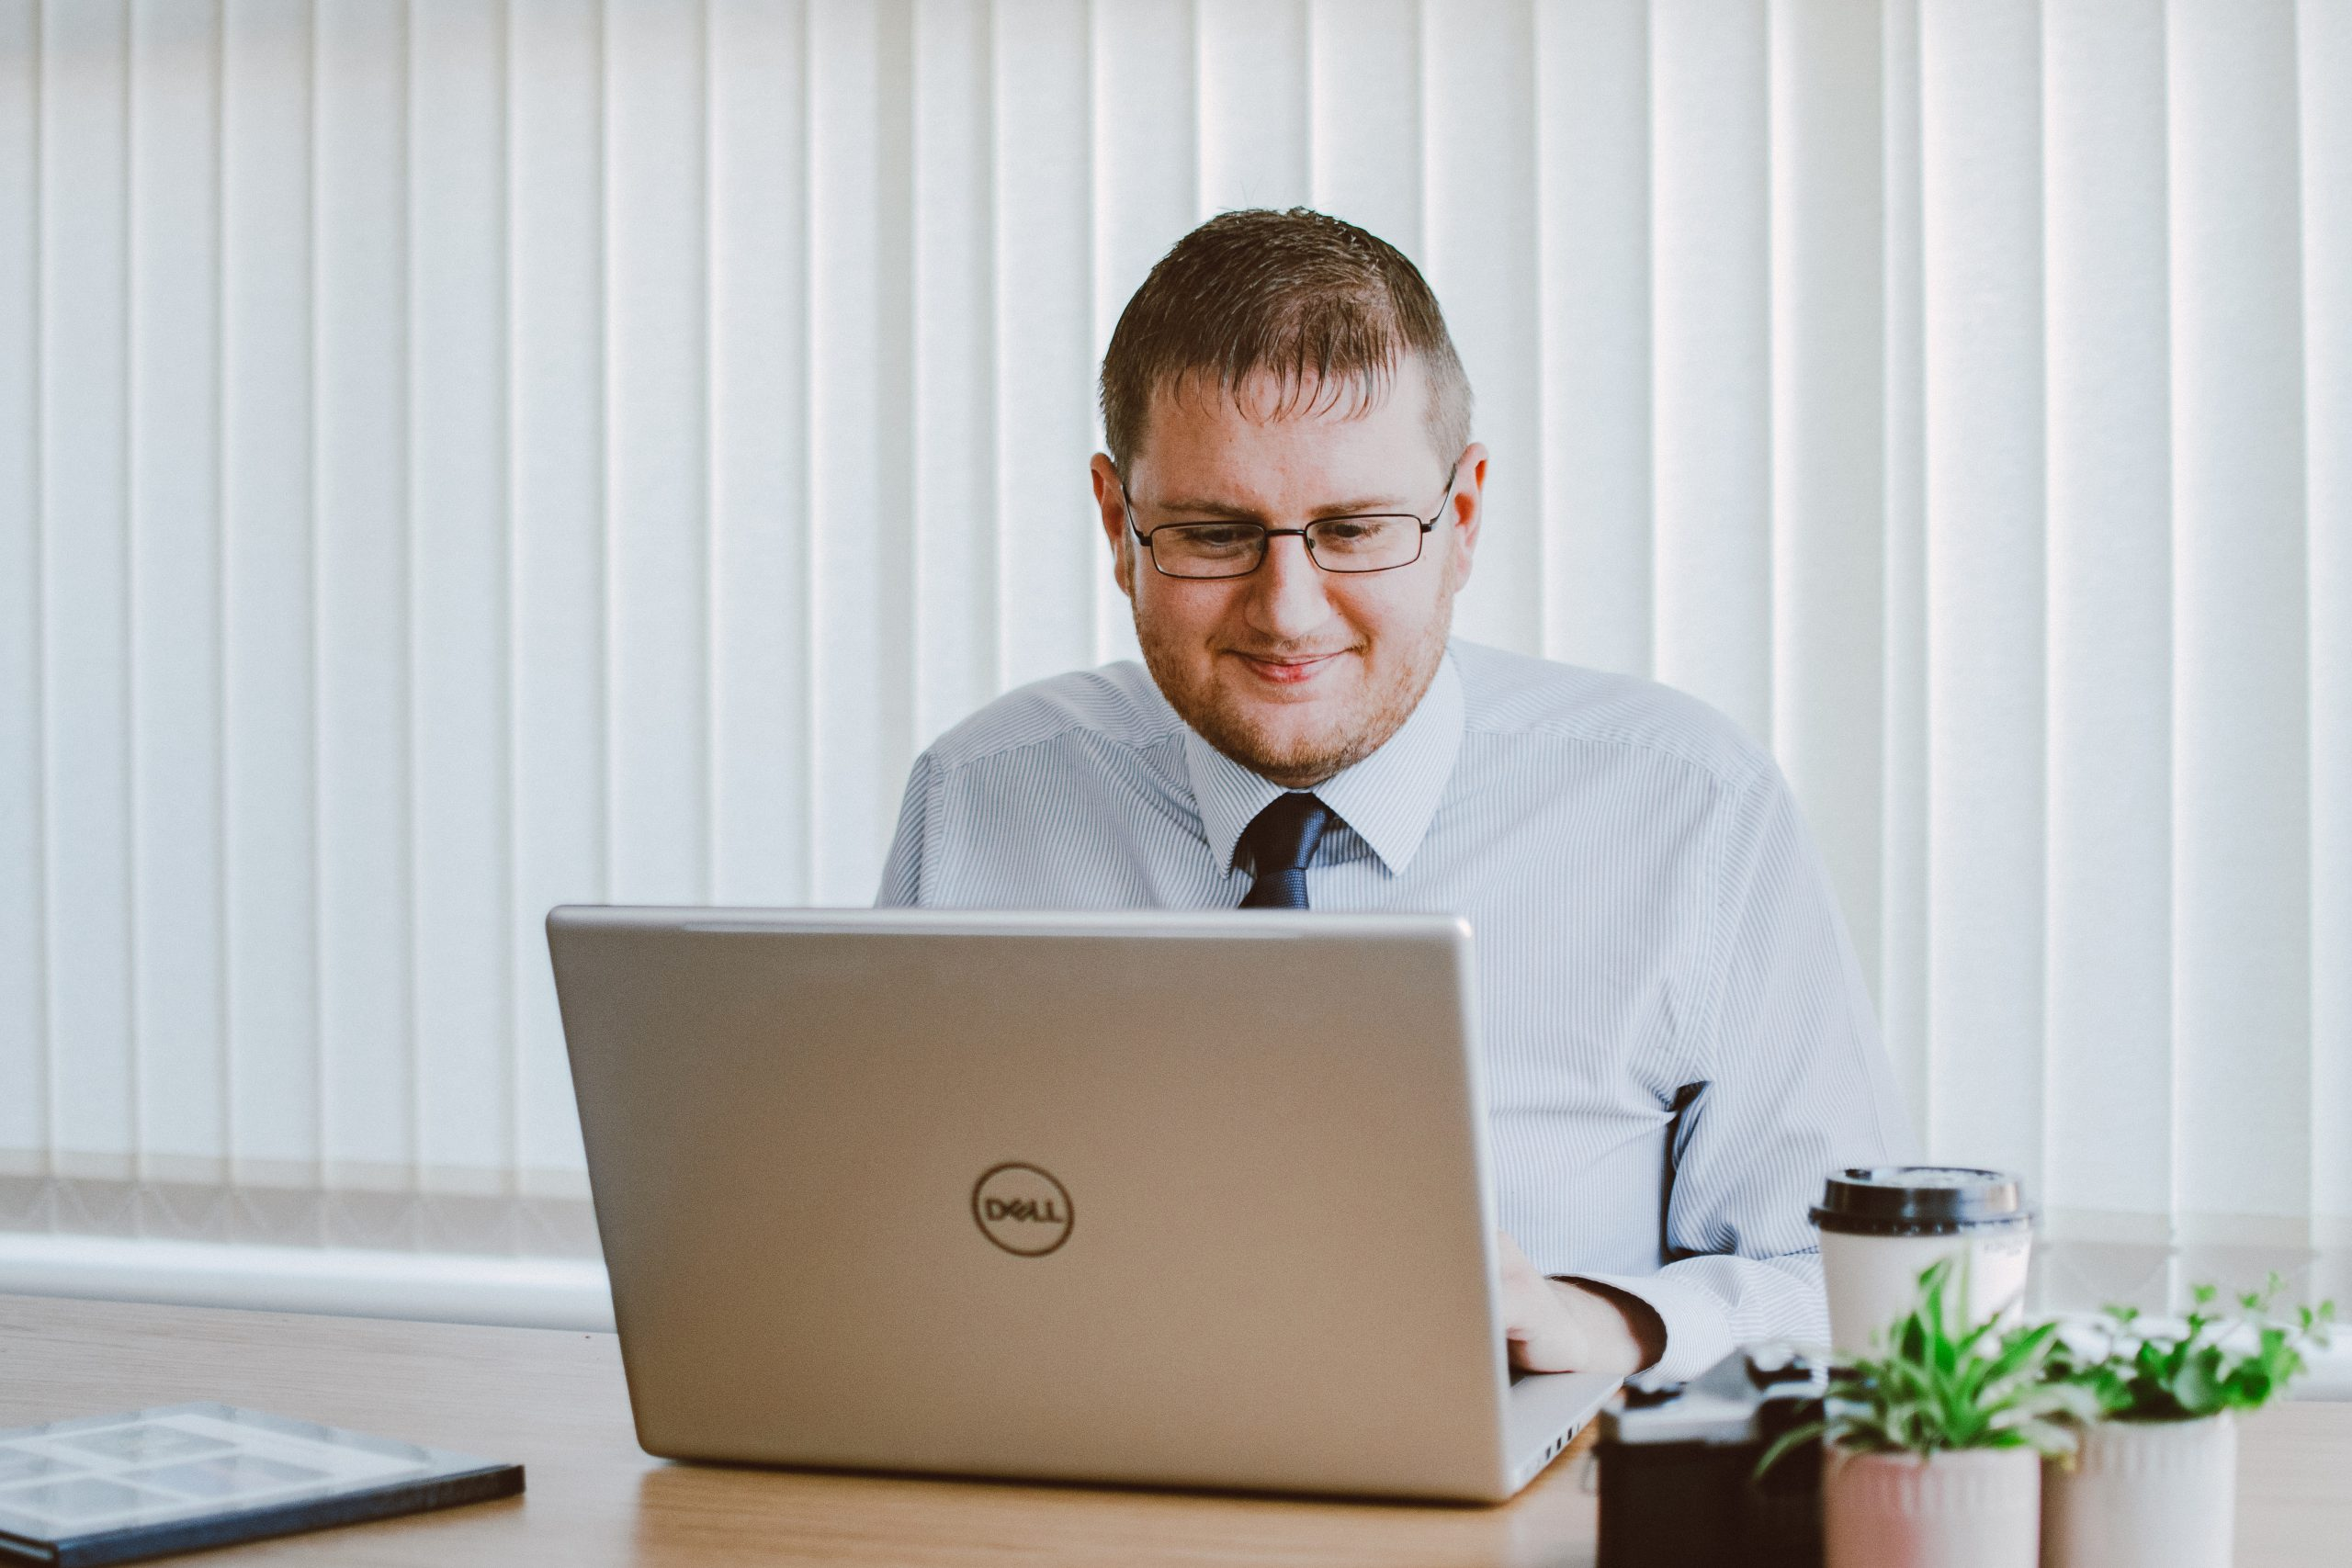 Man in white dress shirt using silver dell laptop